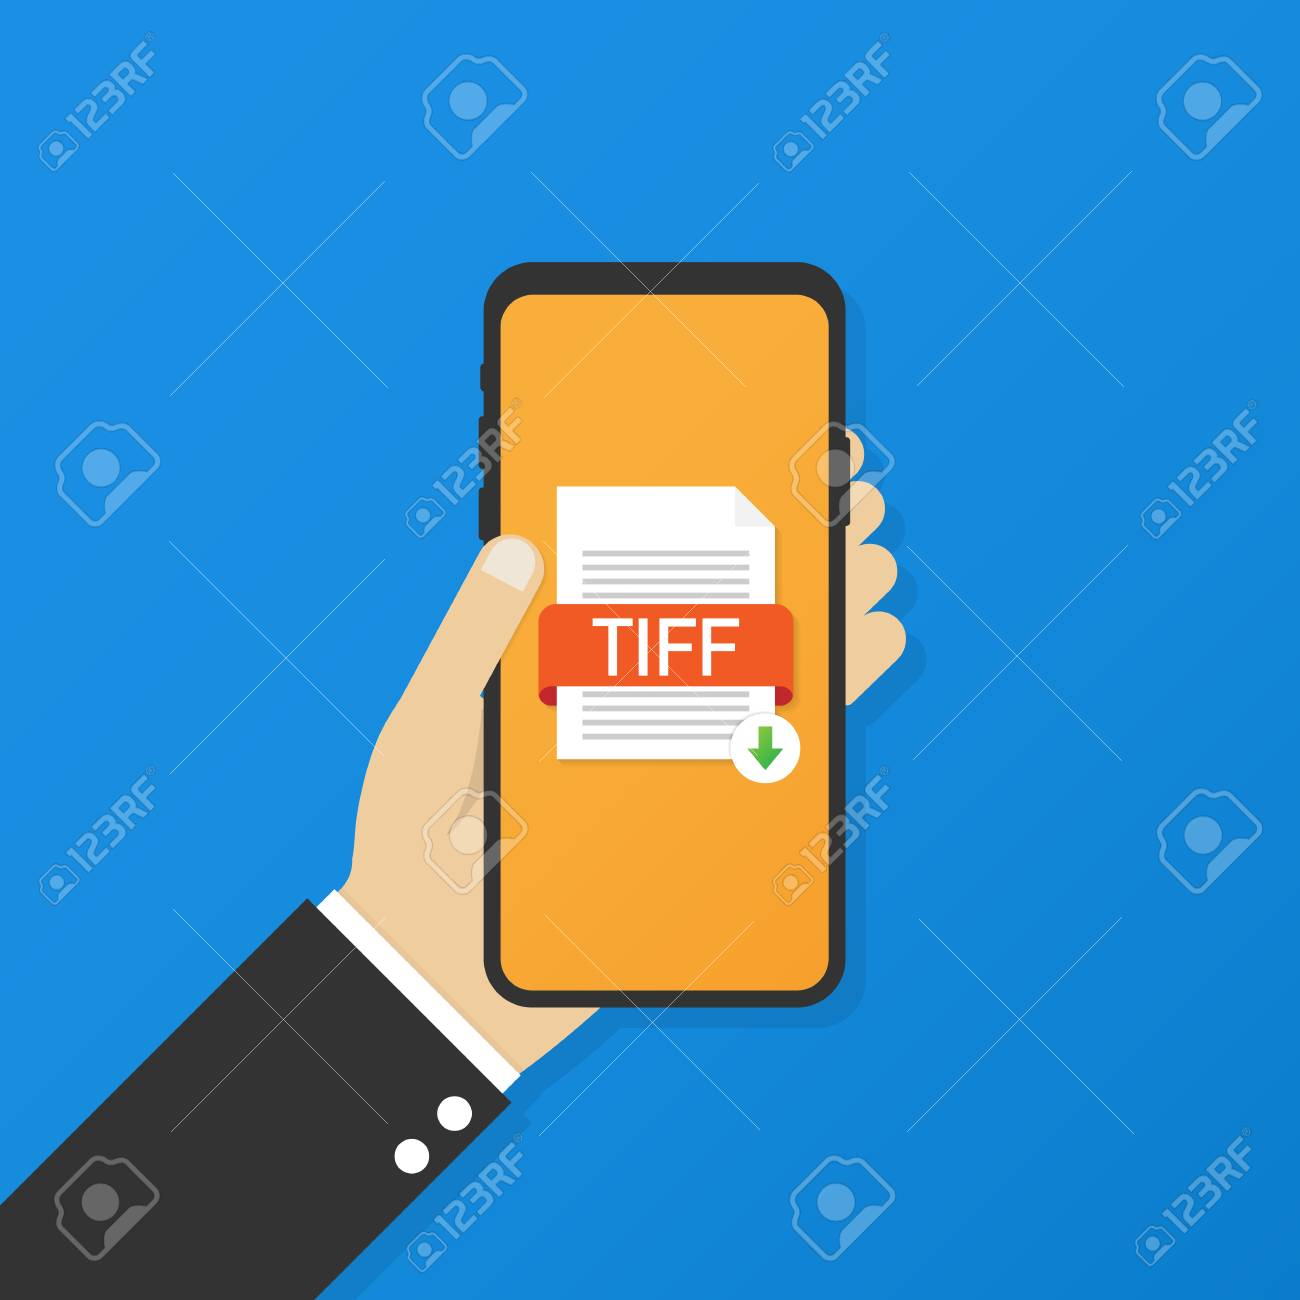 Download tiff button on smartphone screen. Downloading document.